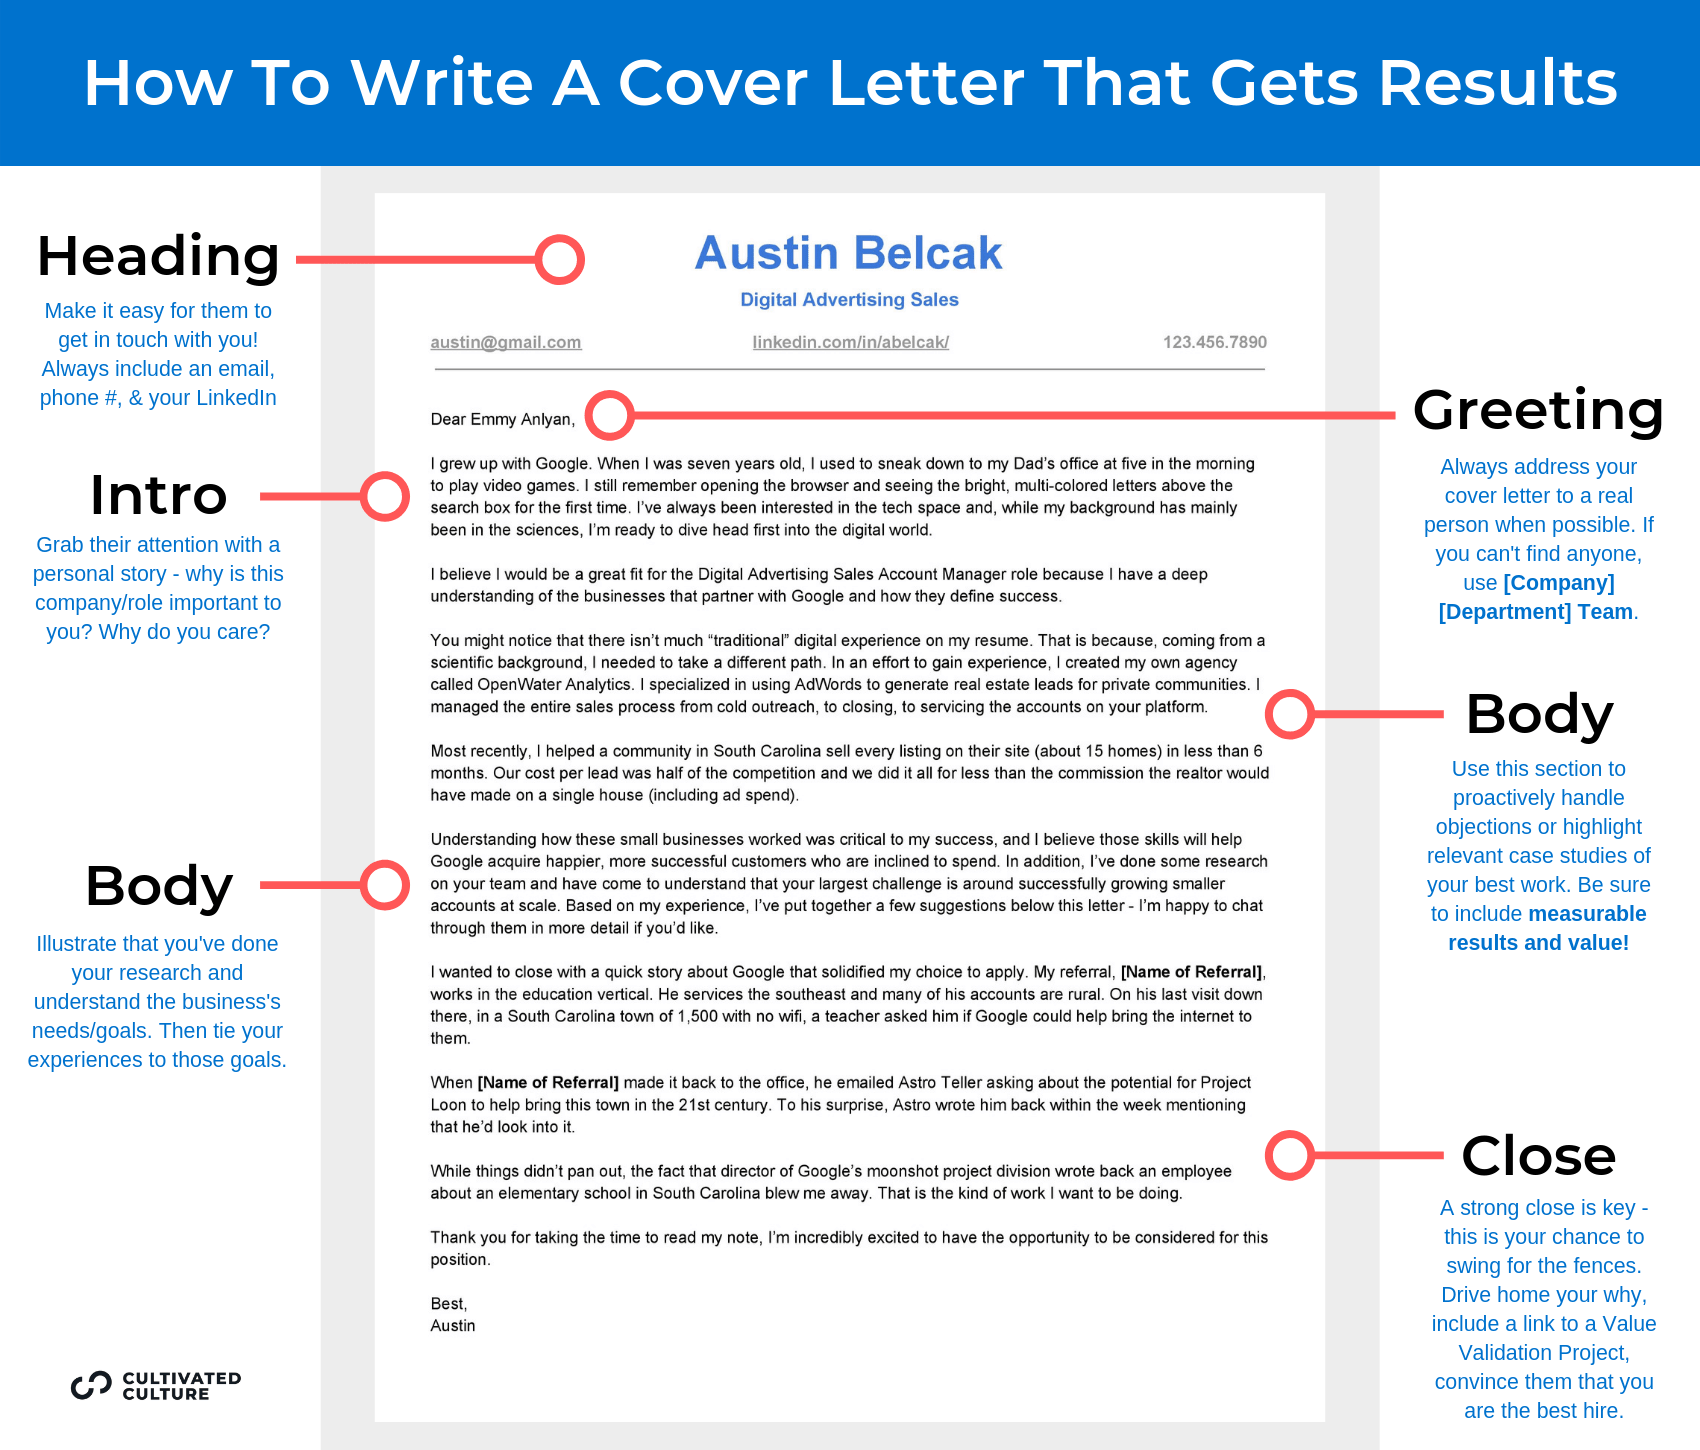 Writing A Cover Letter To A Company How To Write An Amazing Cover Letter That Will Get You Hired